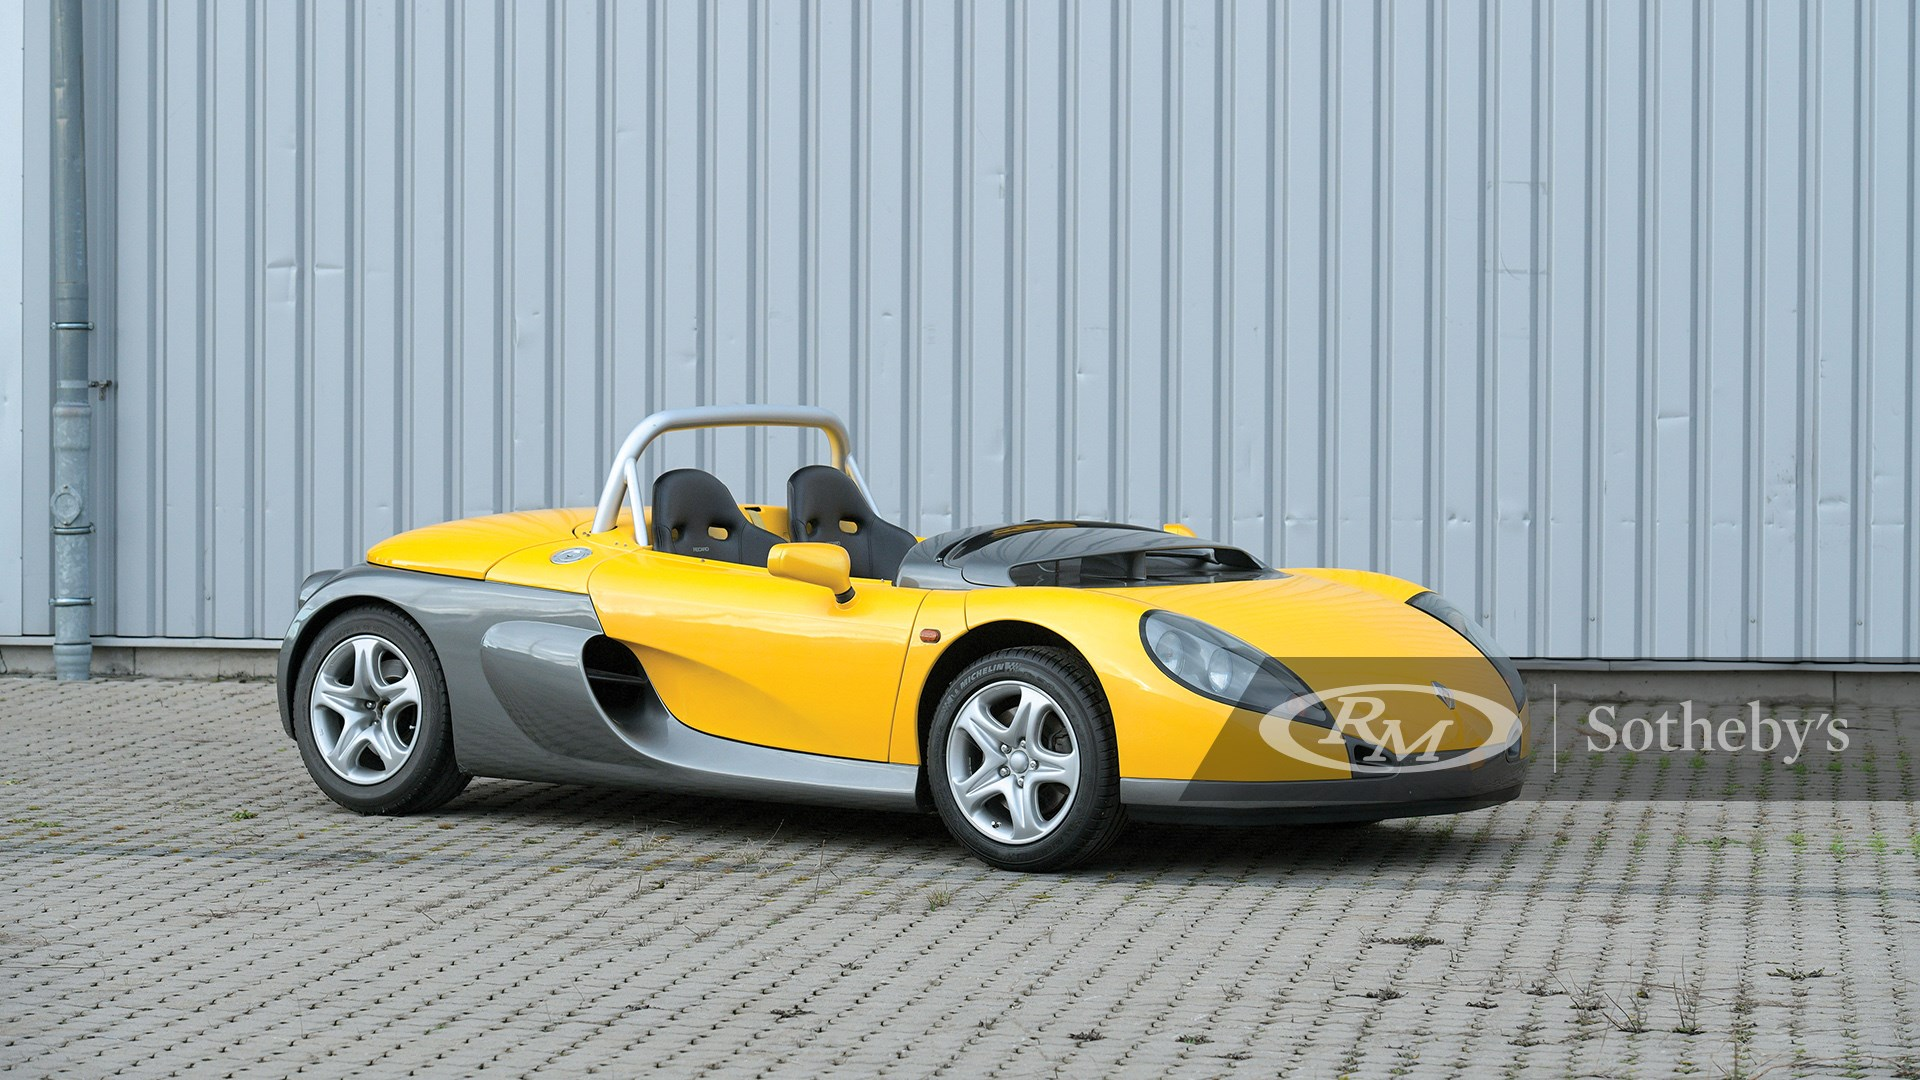 The European Sale Featuring The Petitjean Collection, 1996 Renault Sport Spider